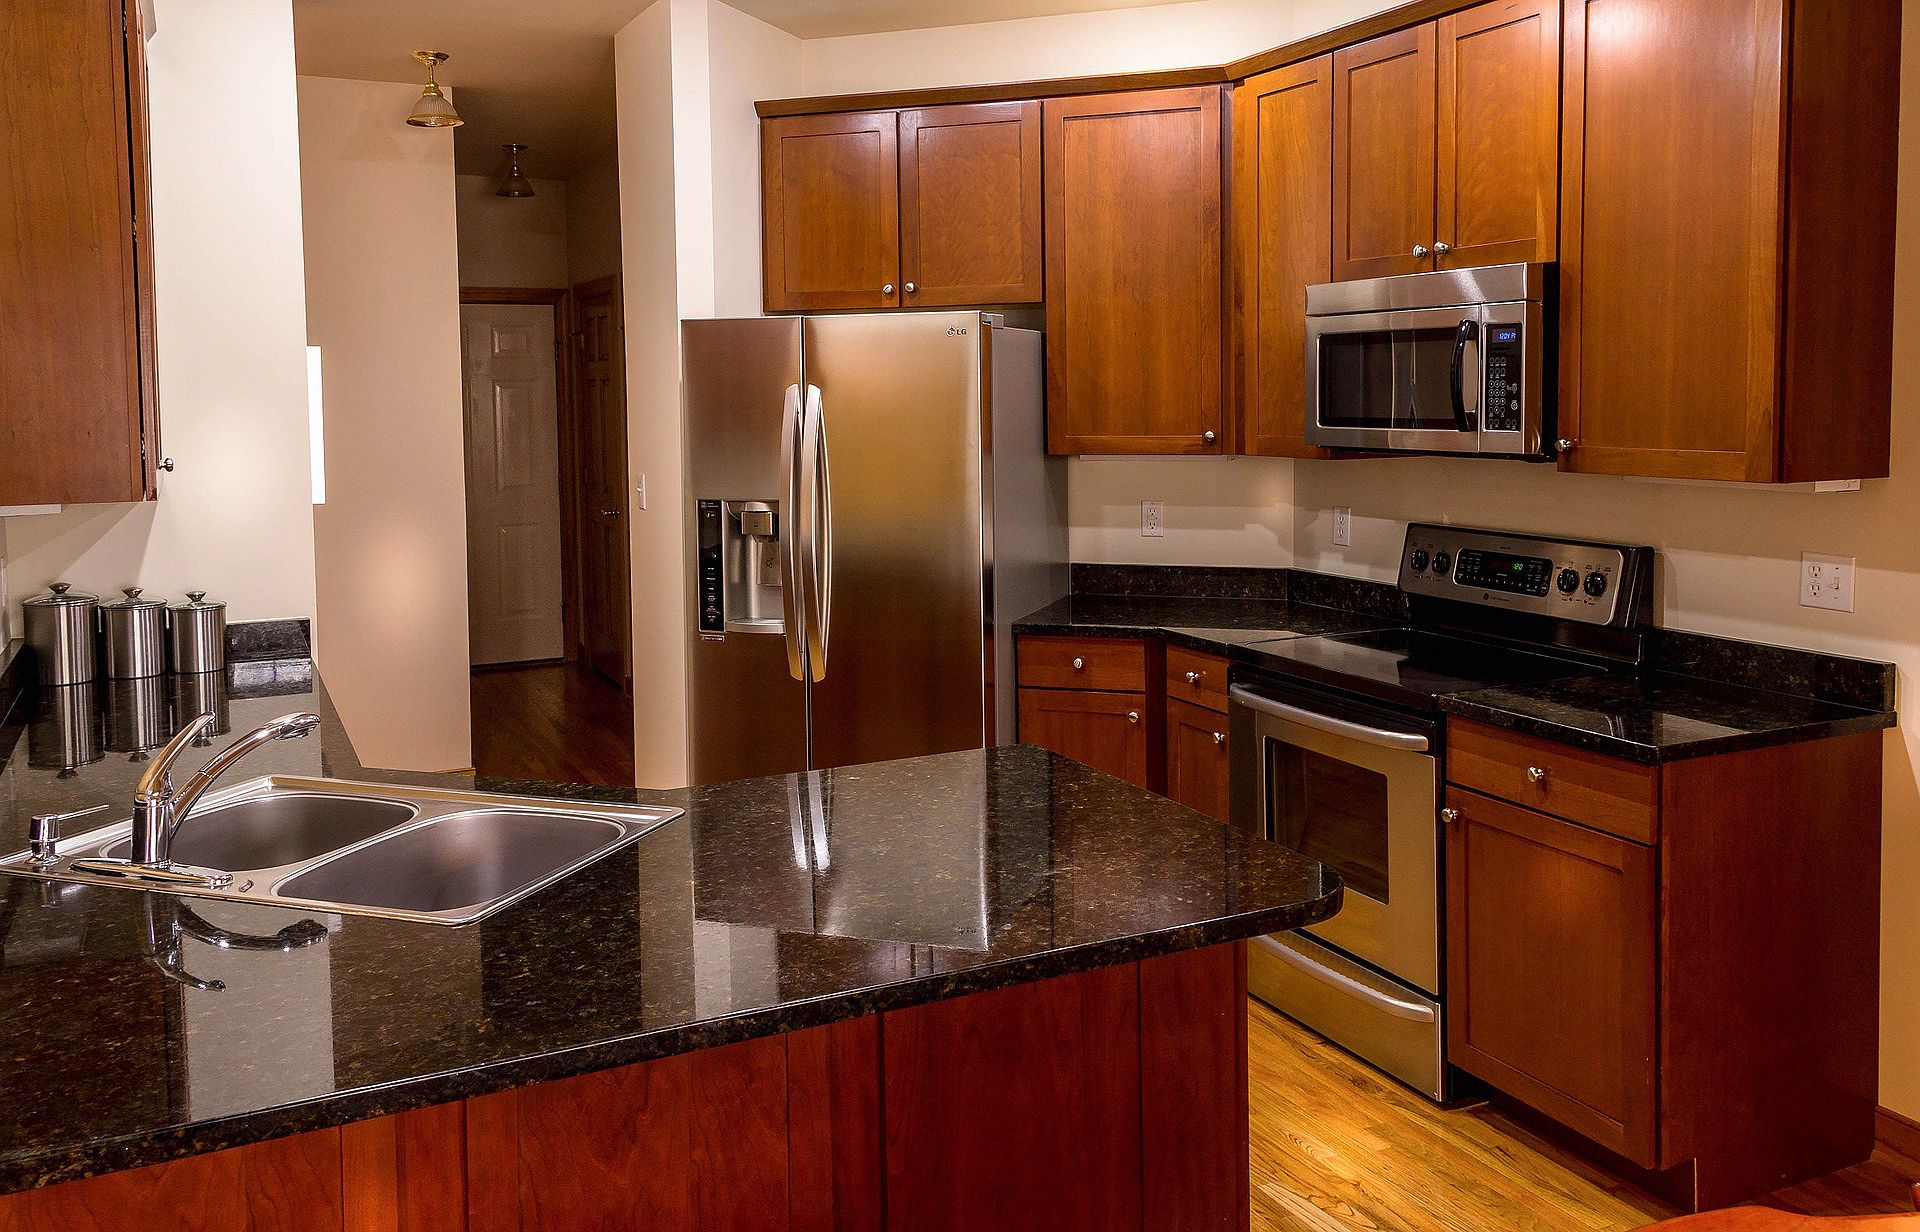 Quartz vs. Granite Countertops: Which Is Best?